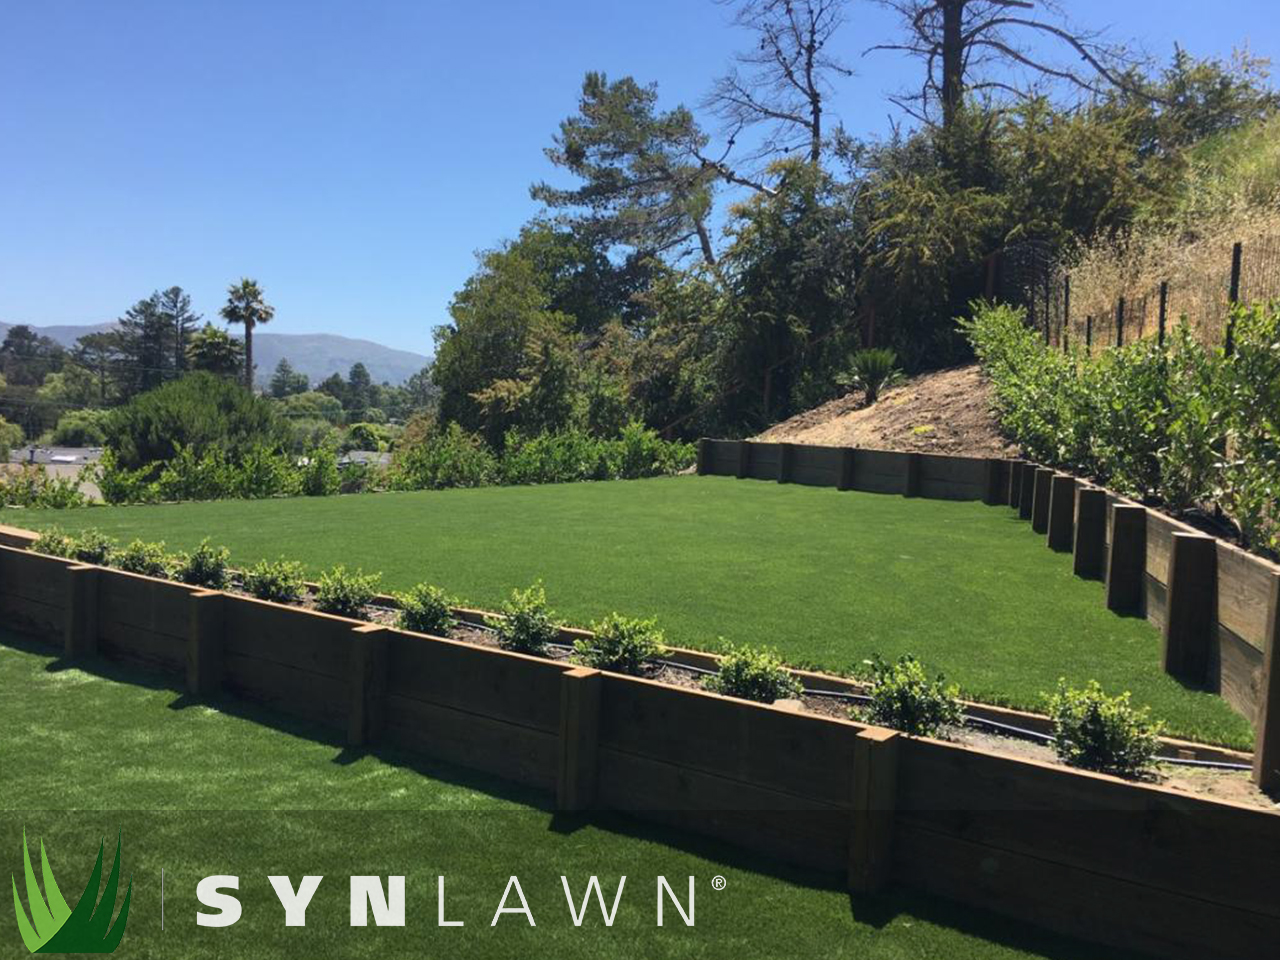 SYNLawn Landscape Photo 1